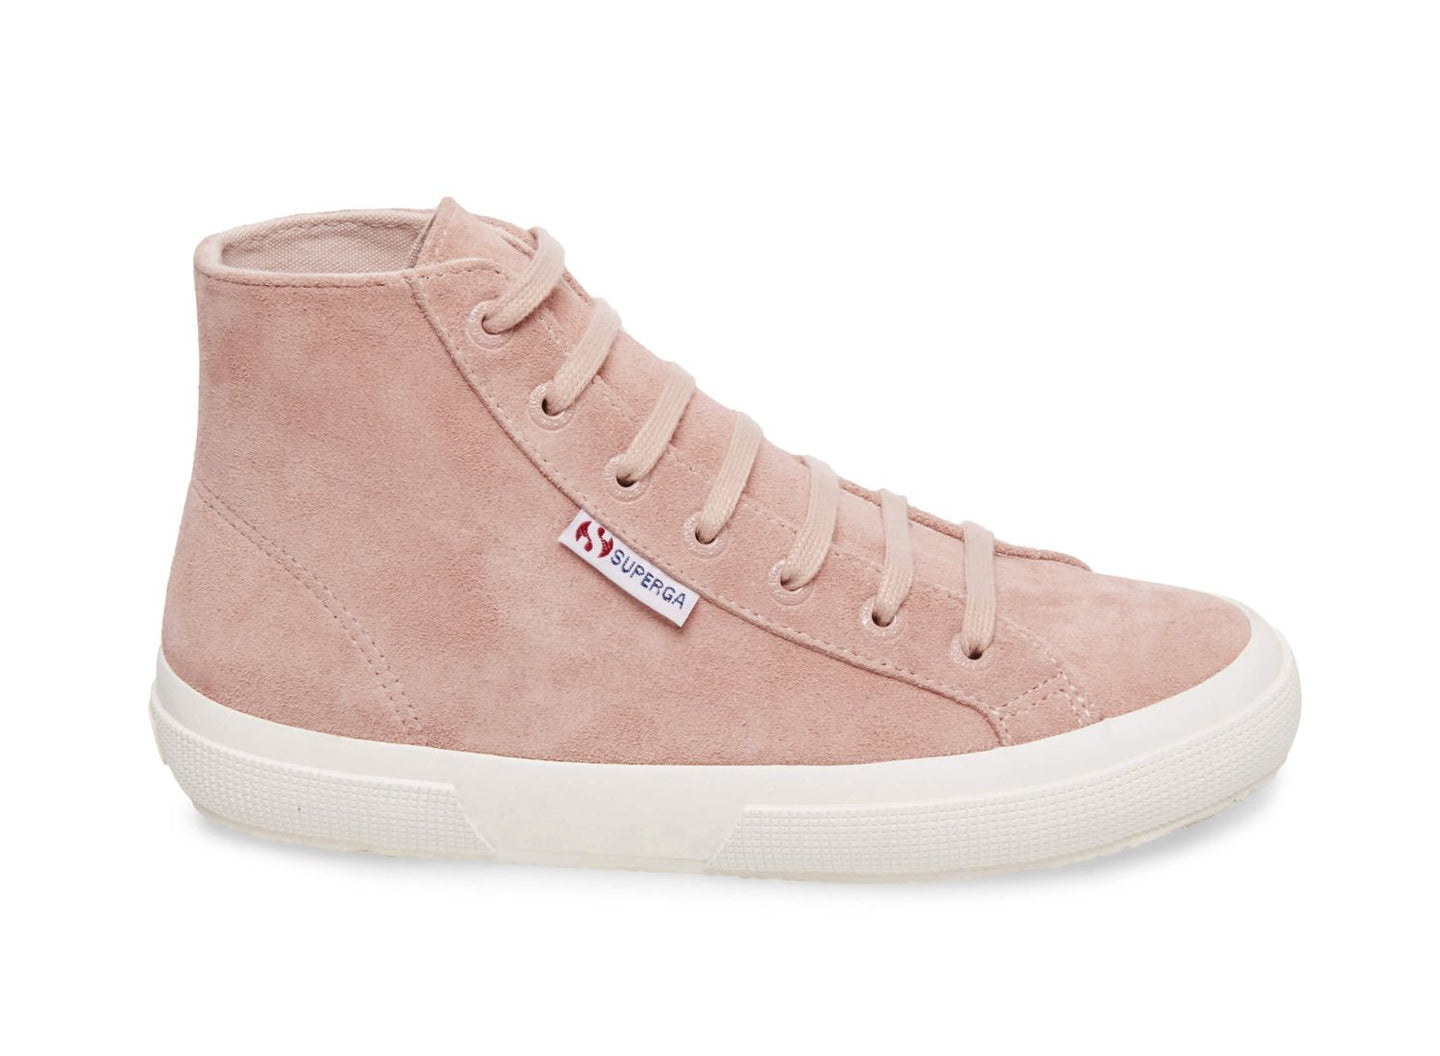 2795 SUECOTLINW ROSE SUEDE -